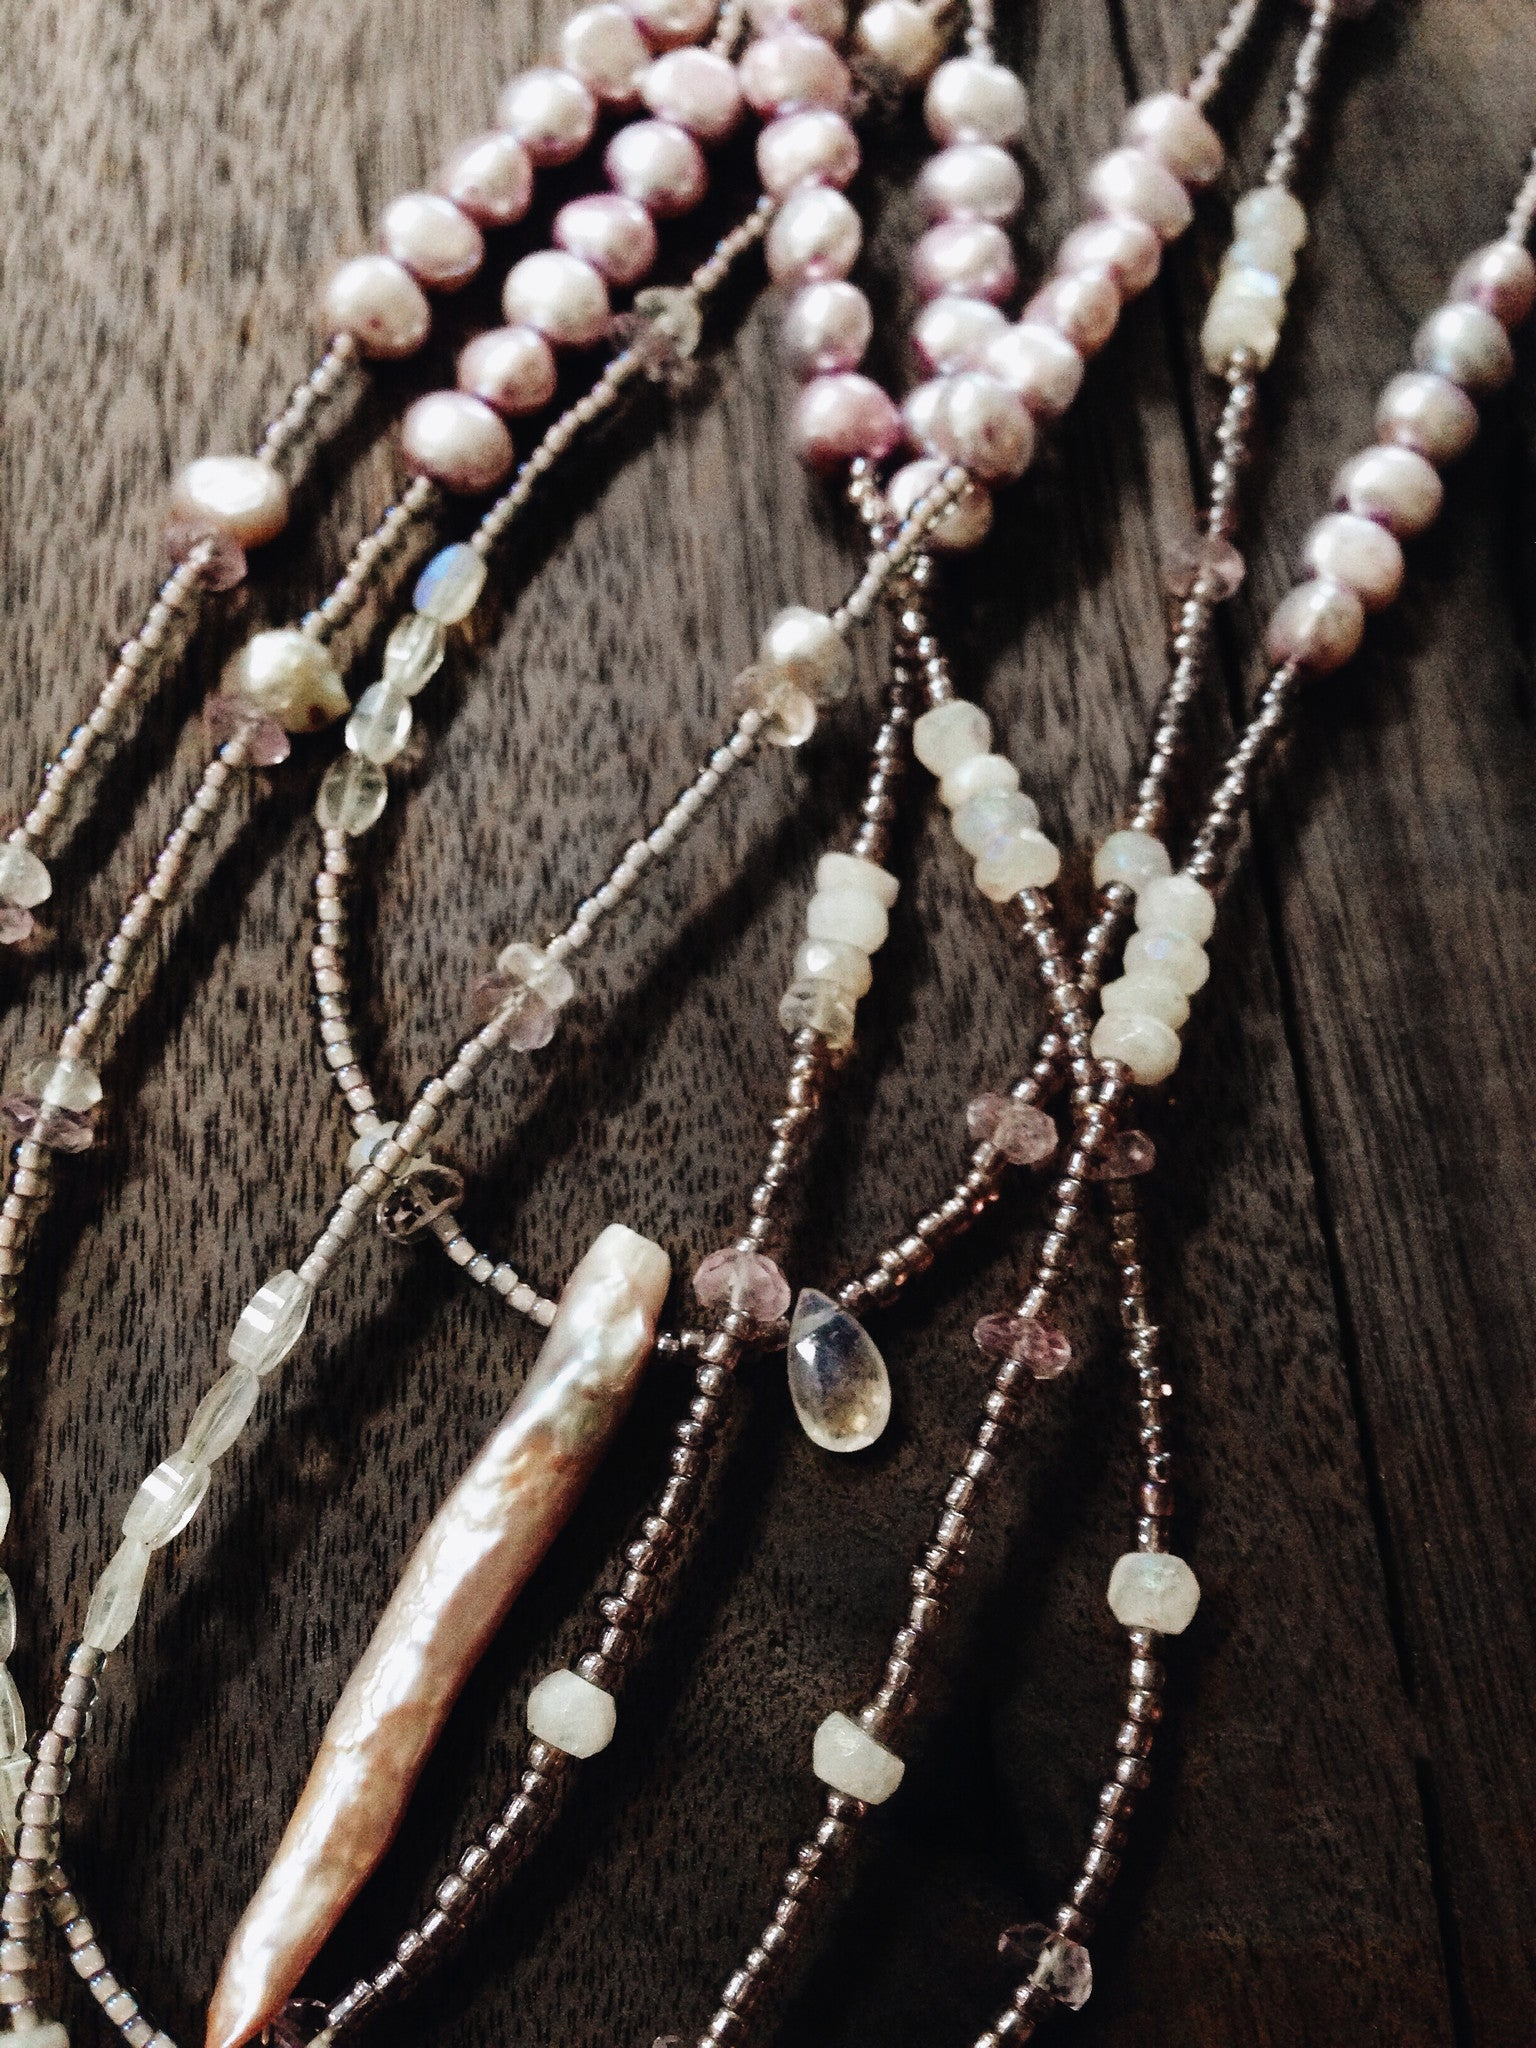 SOLD - Moon Pearl + Natural Freshwater Pearl + Aura Moonstone + Rose de France Amethyst and Rose Quartz necklace